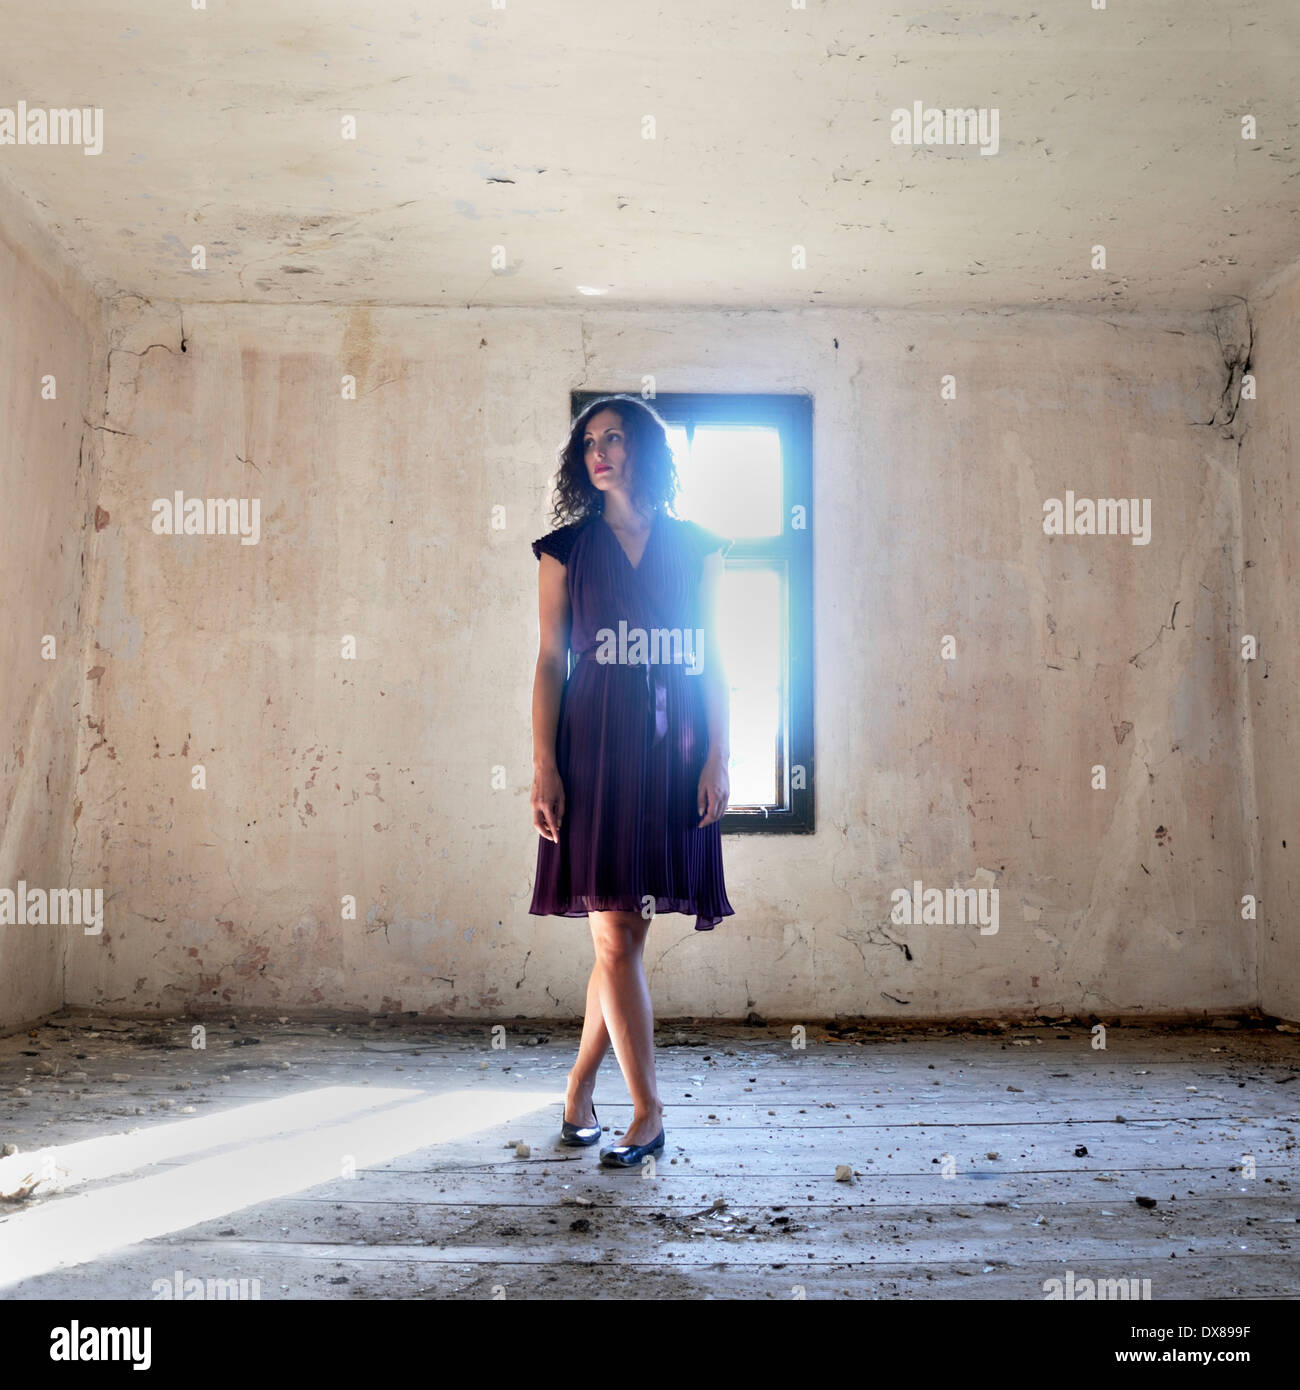 Woman standing by the window - Stock Image